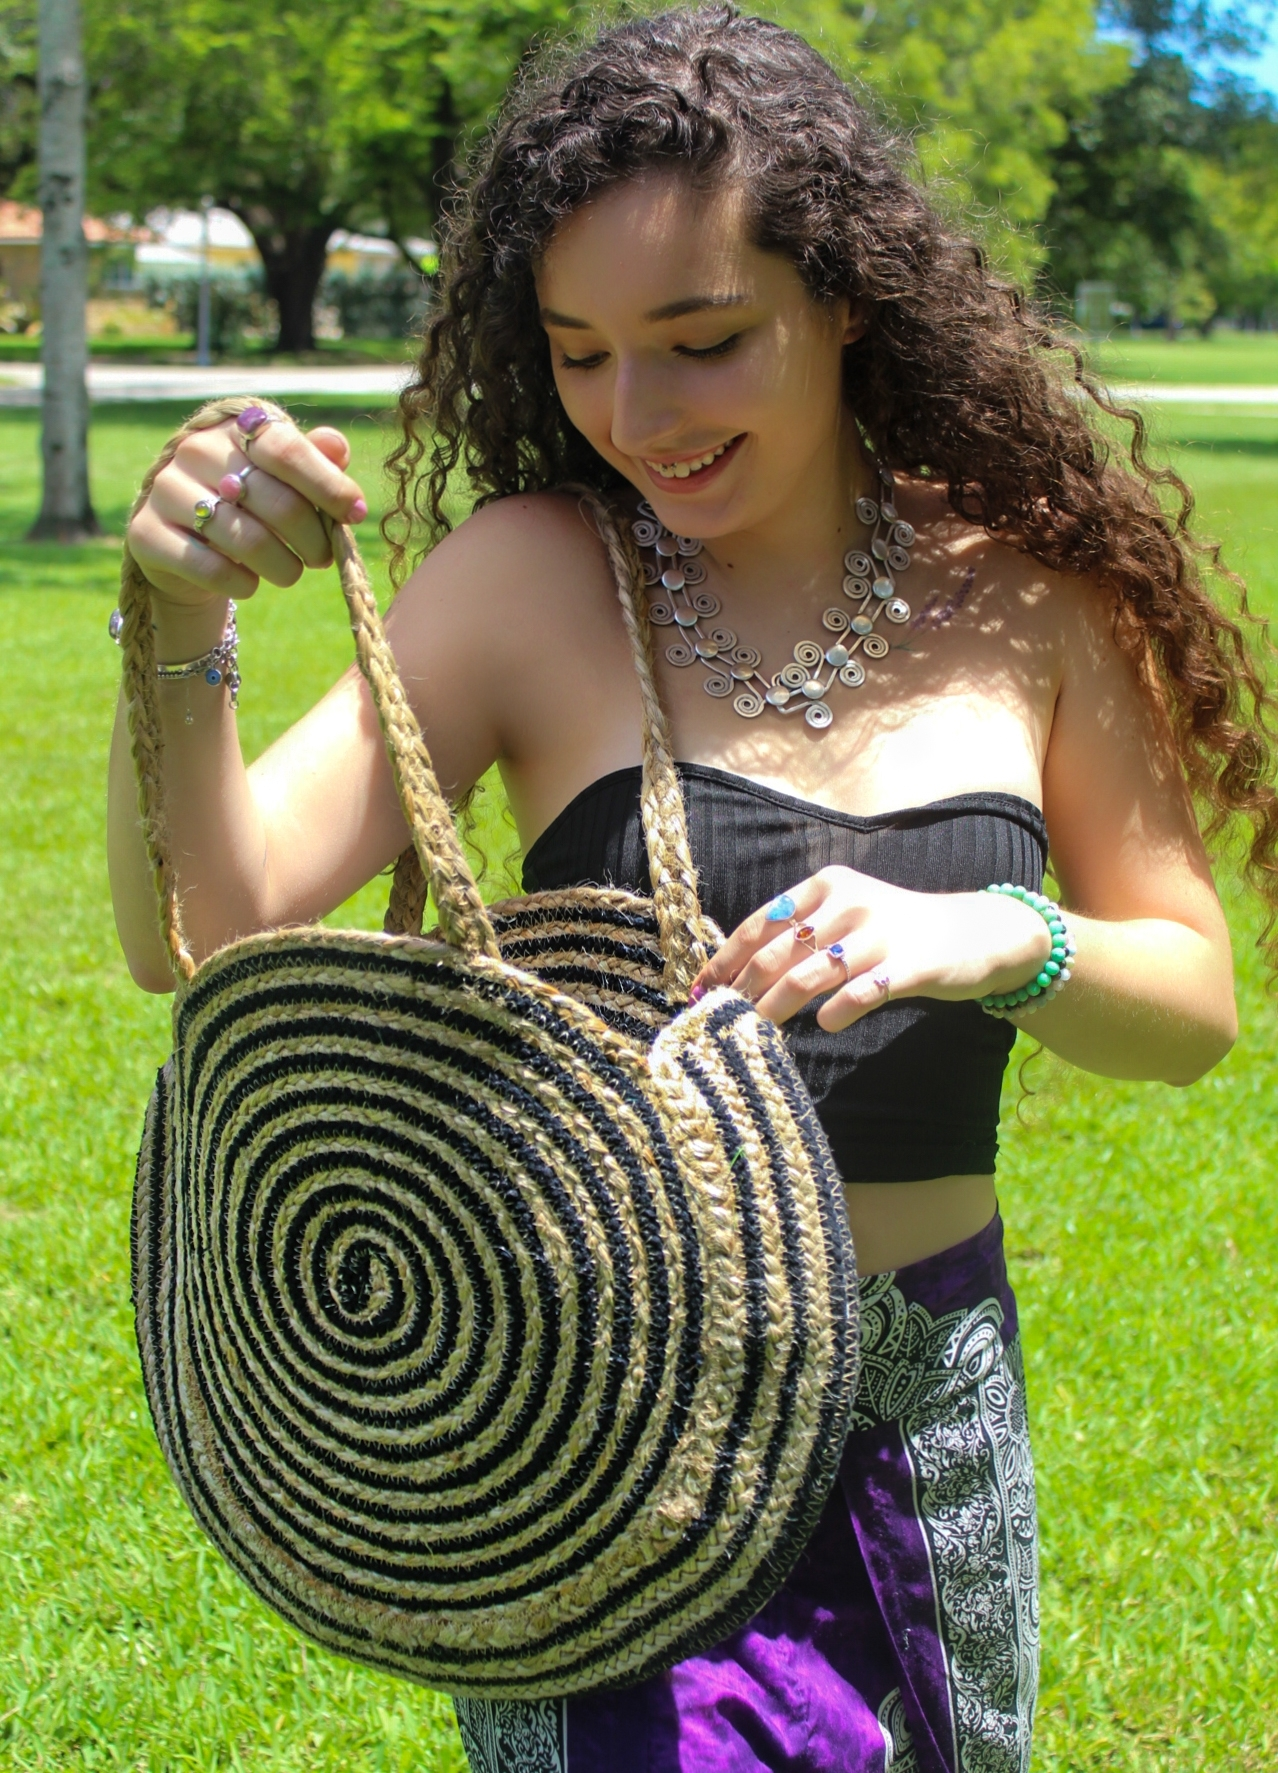 Model Wearing Hand Woven Handle Bag and Silver Jewelry